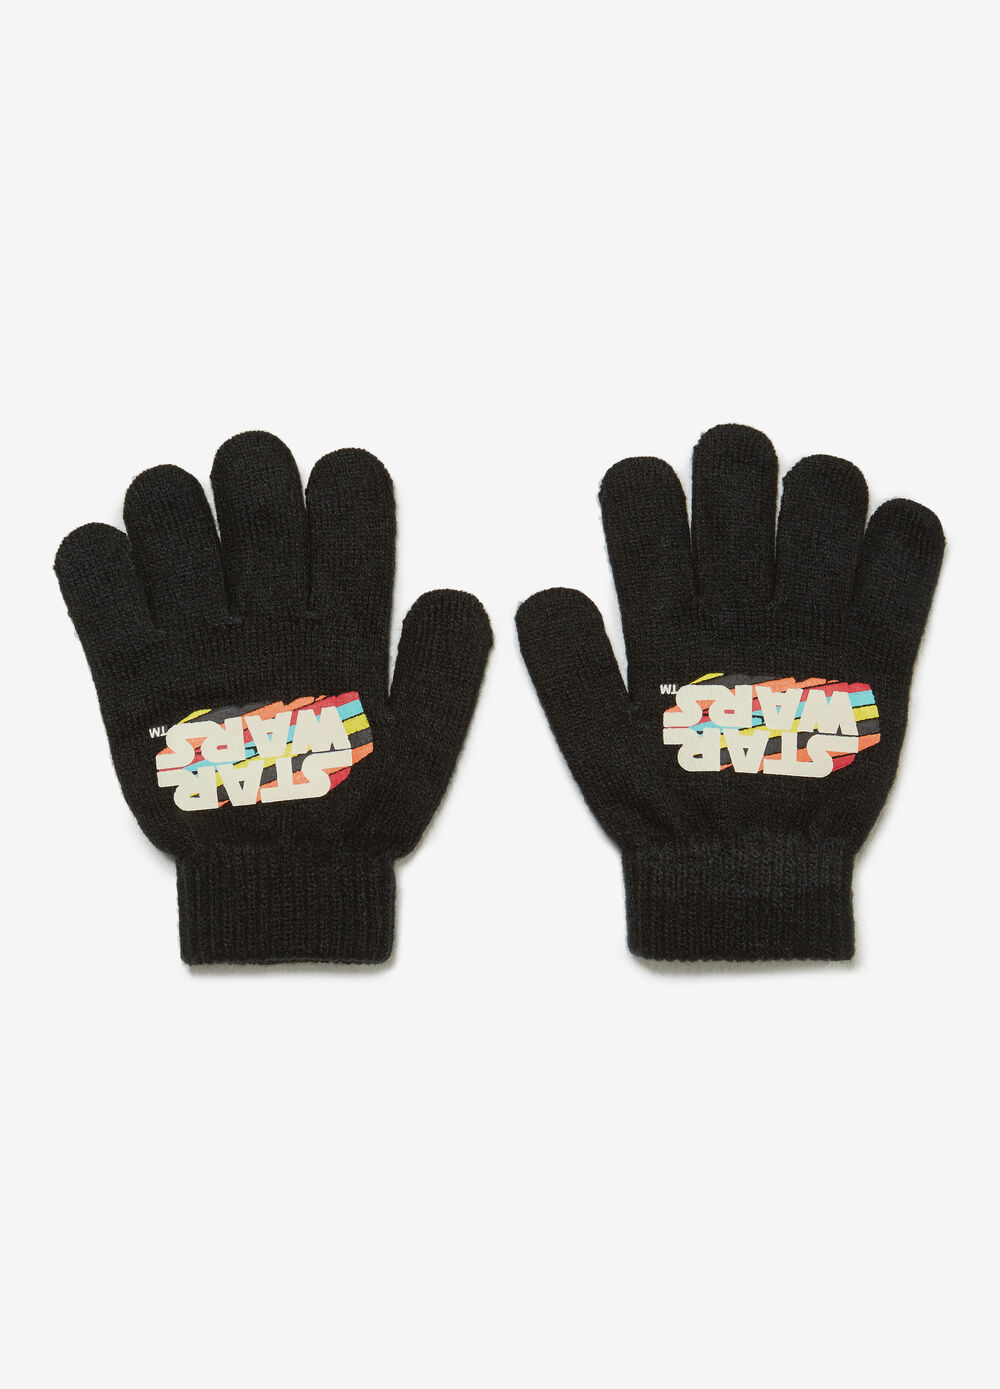 Gloves with Star Wars print